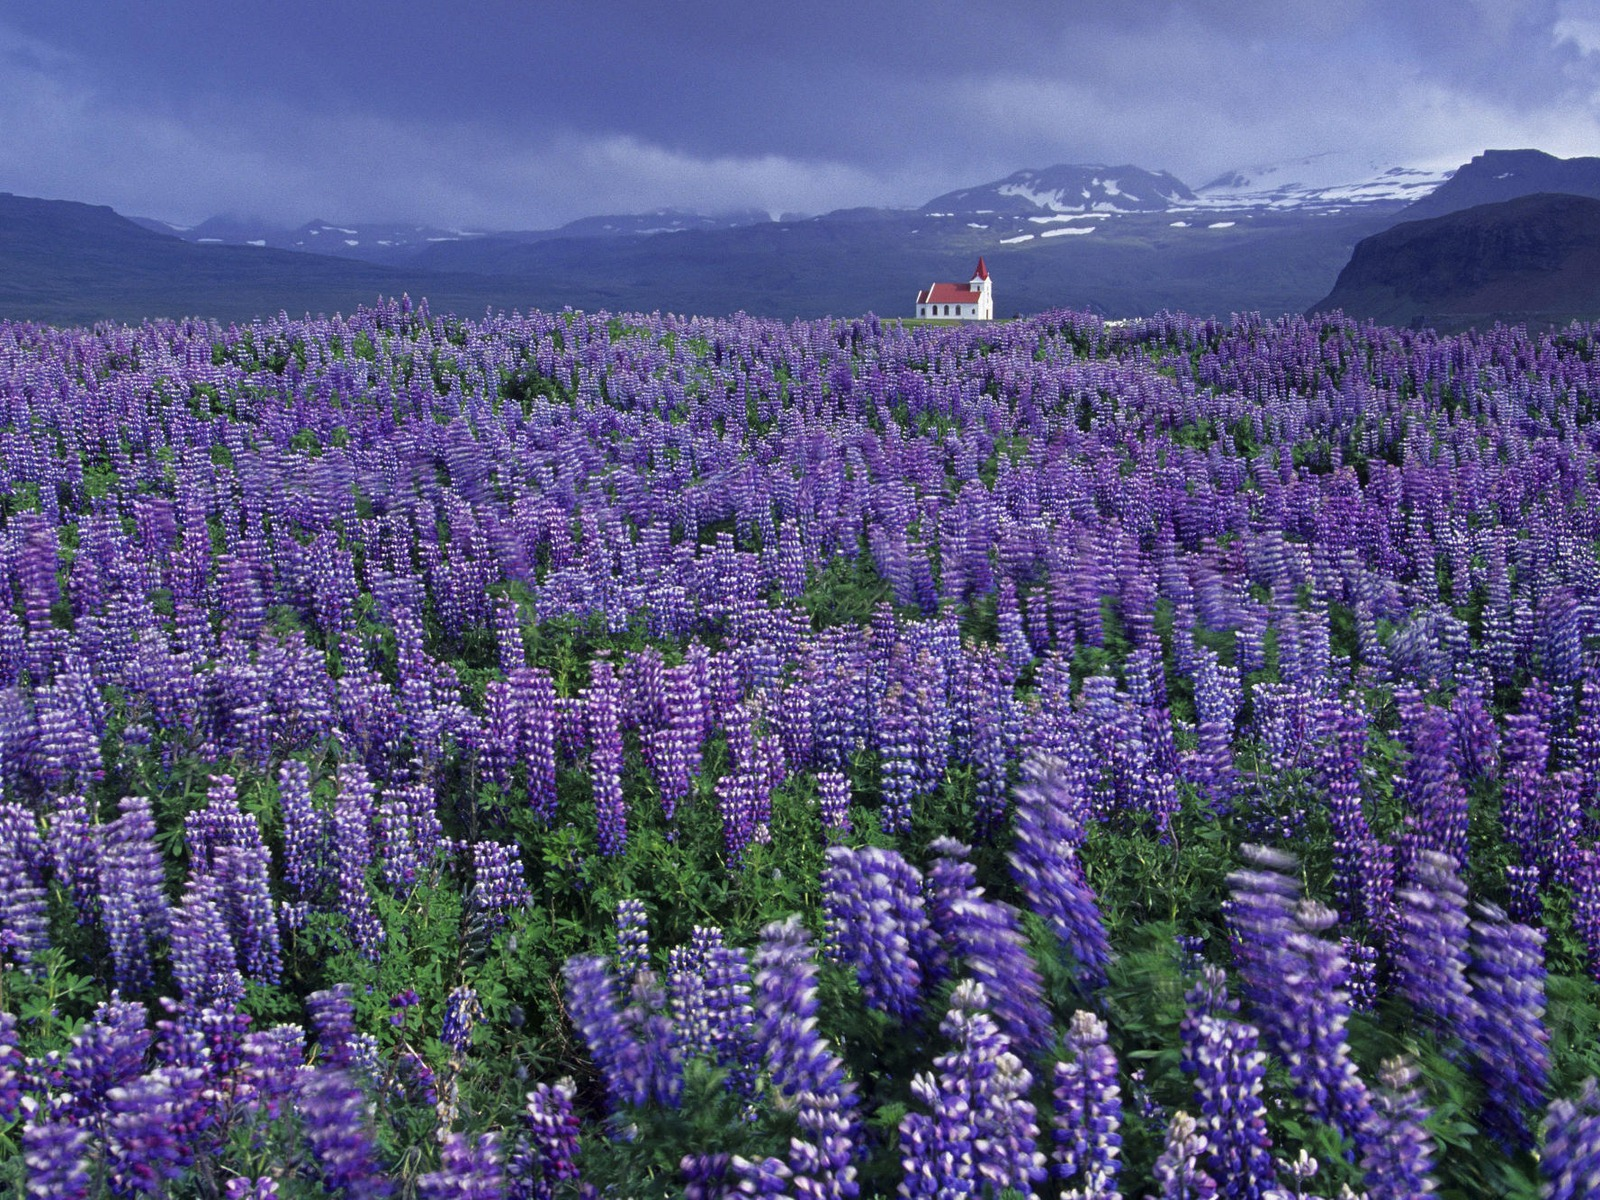 Wild Lupine and Church, Near Hellissandur, Snaefellsnes Peninsula, Iceland